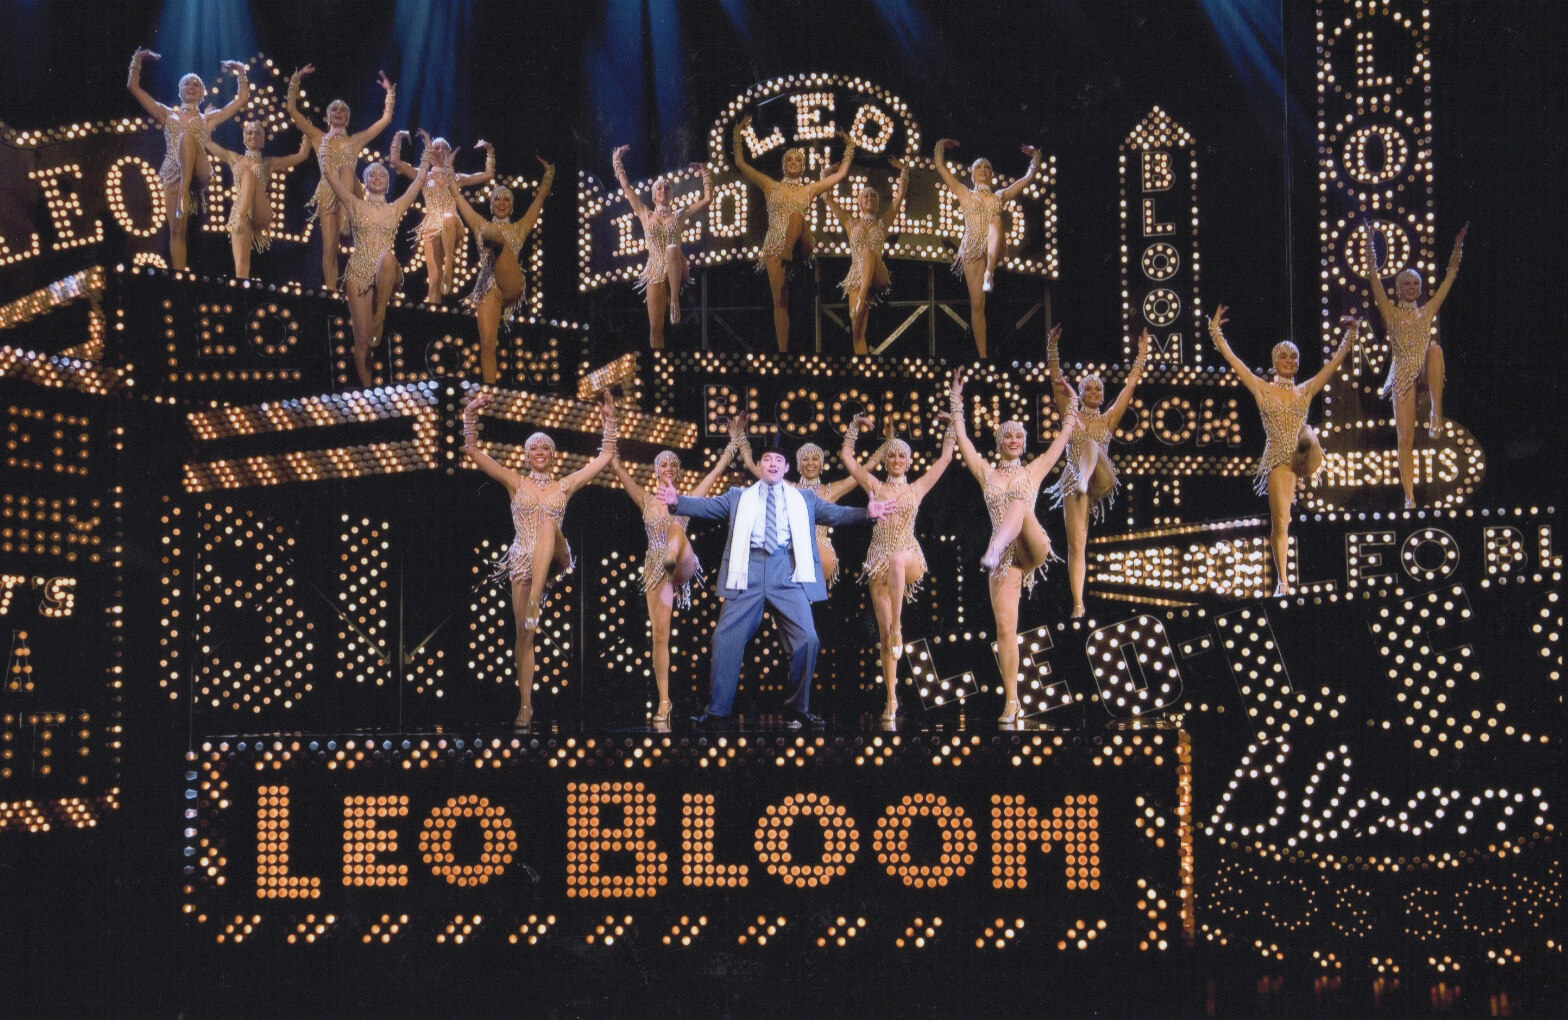 """Leo Bloom (Matthew Broderick) and the Pearl Girls dancing """"I Wanna Be a Producer"""". They are on a stage set with marquee lights saying Leo Bloom."""